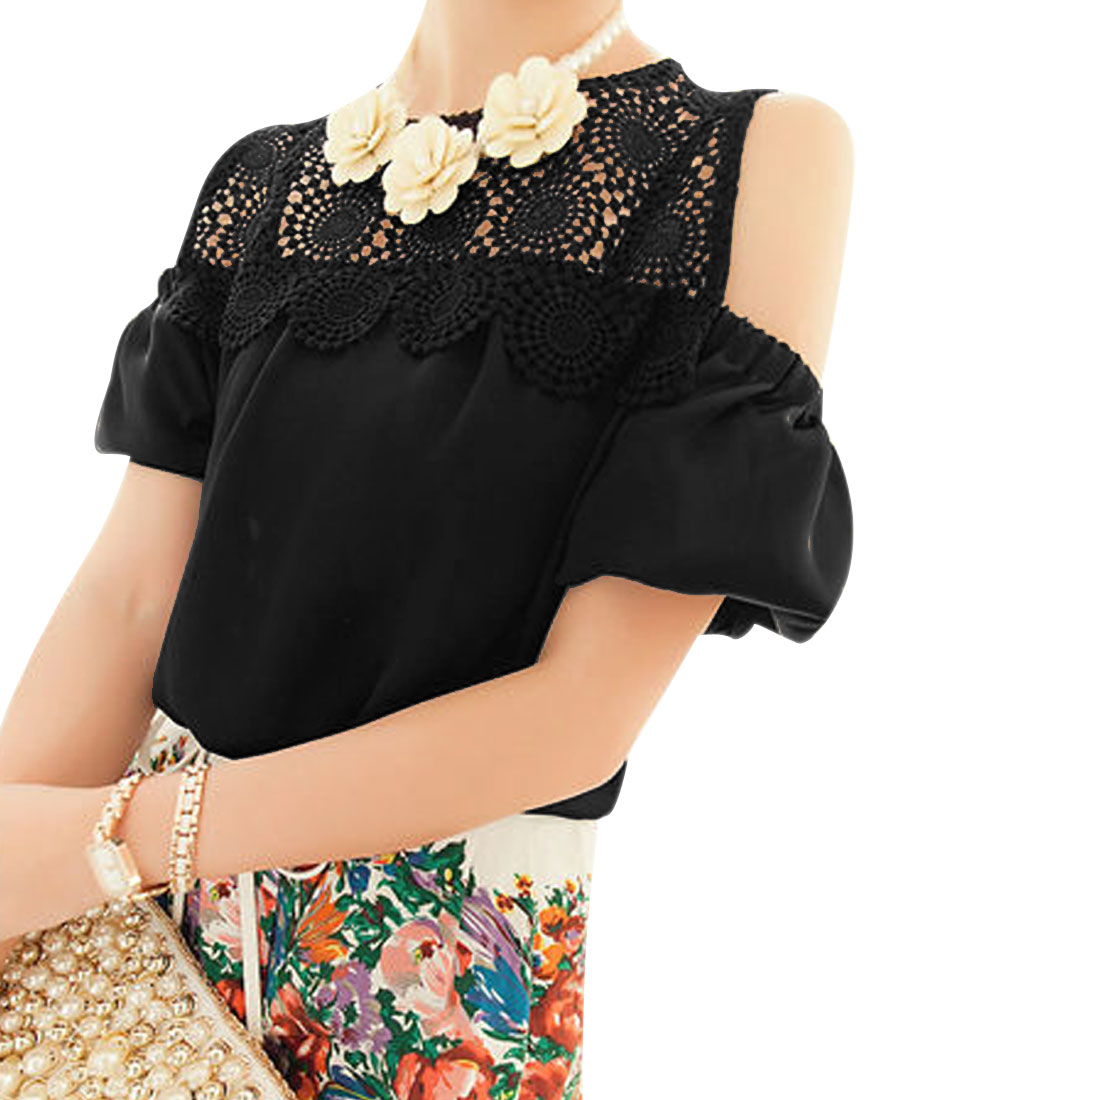 Woman Chic Crochet Flower Design Cutout Shoulder Pure Black Blouse S